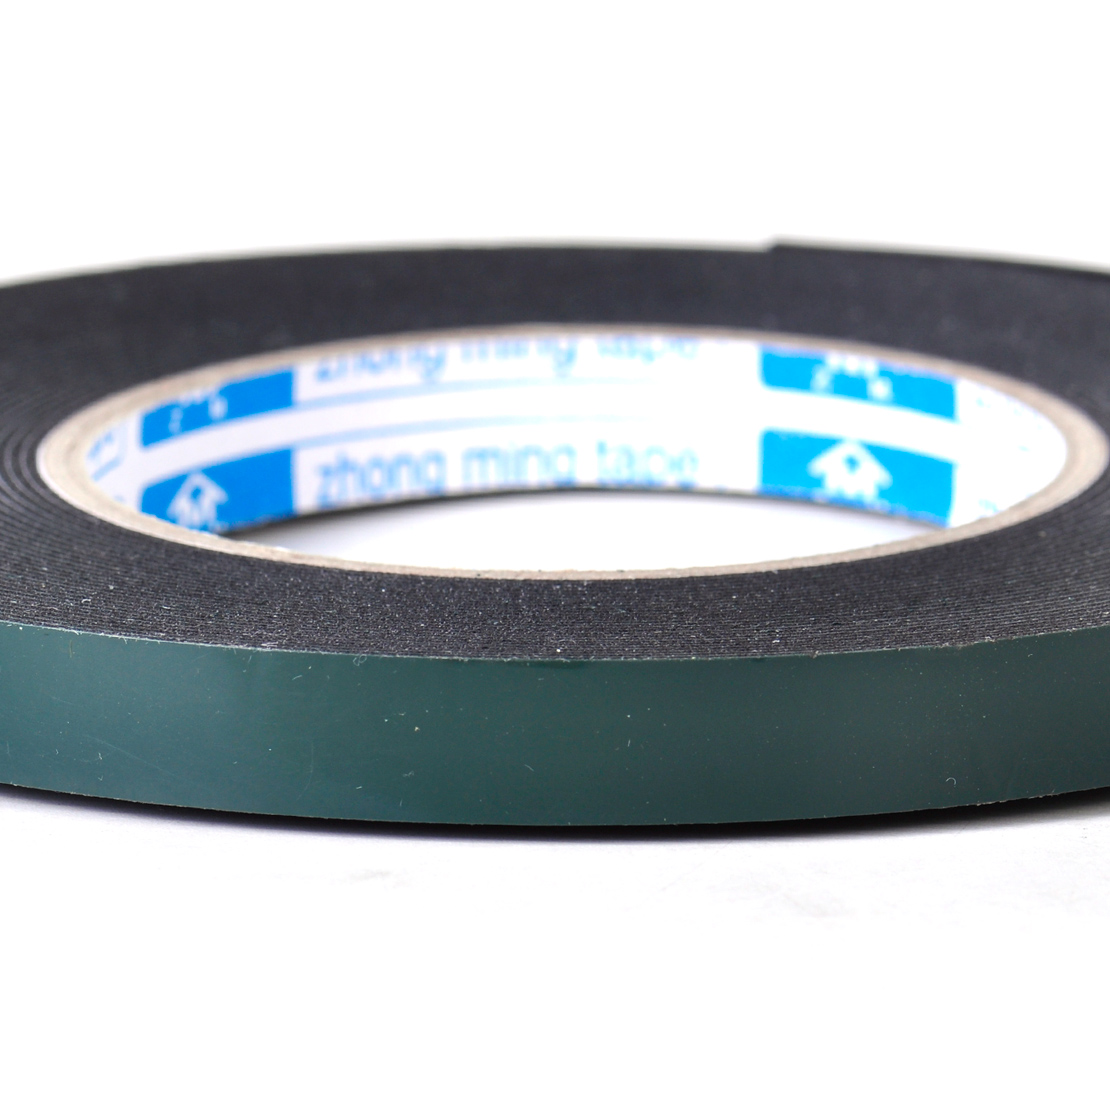 double sided car trim moulding badge tape strong foam adhesive 5m x 12mm ebay. Black Bedroom Furniture Sets. Home Design Ideas